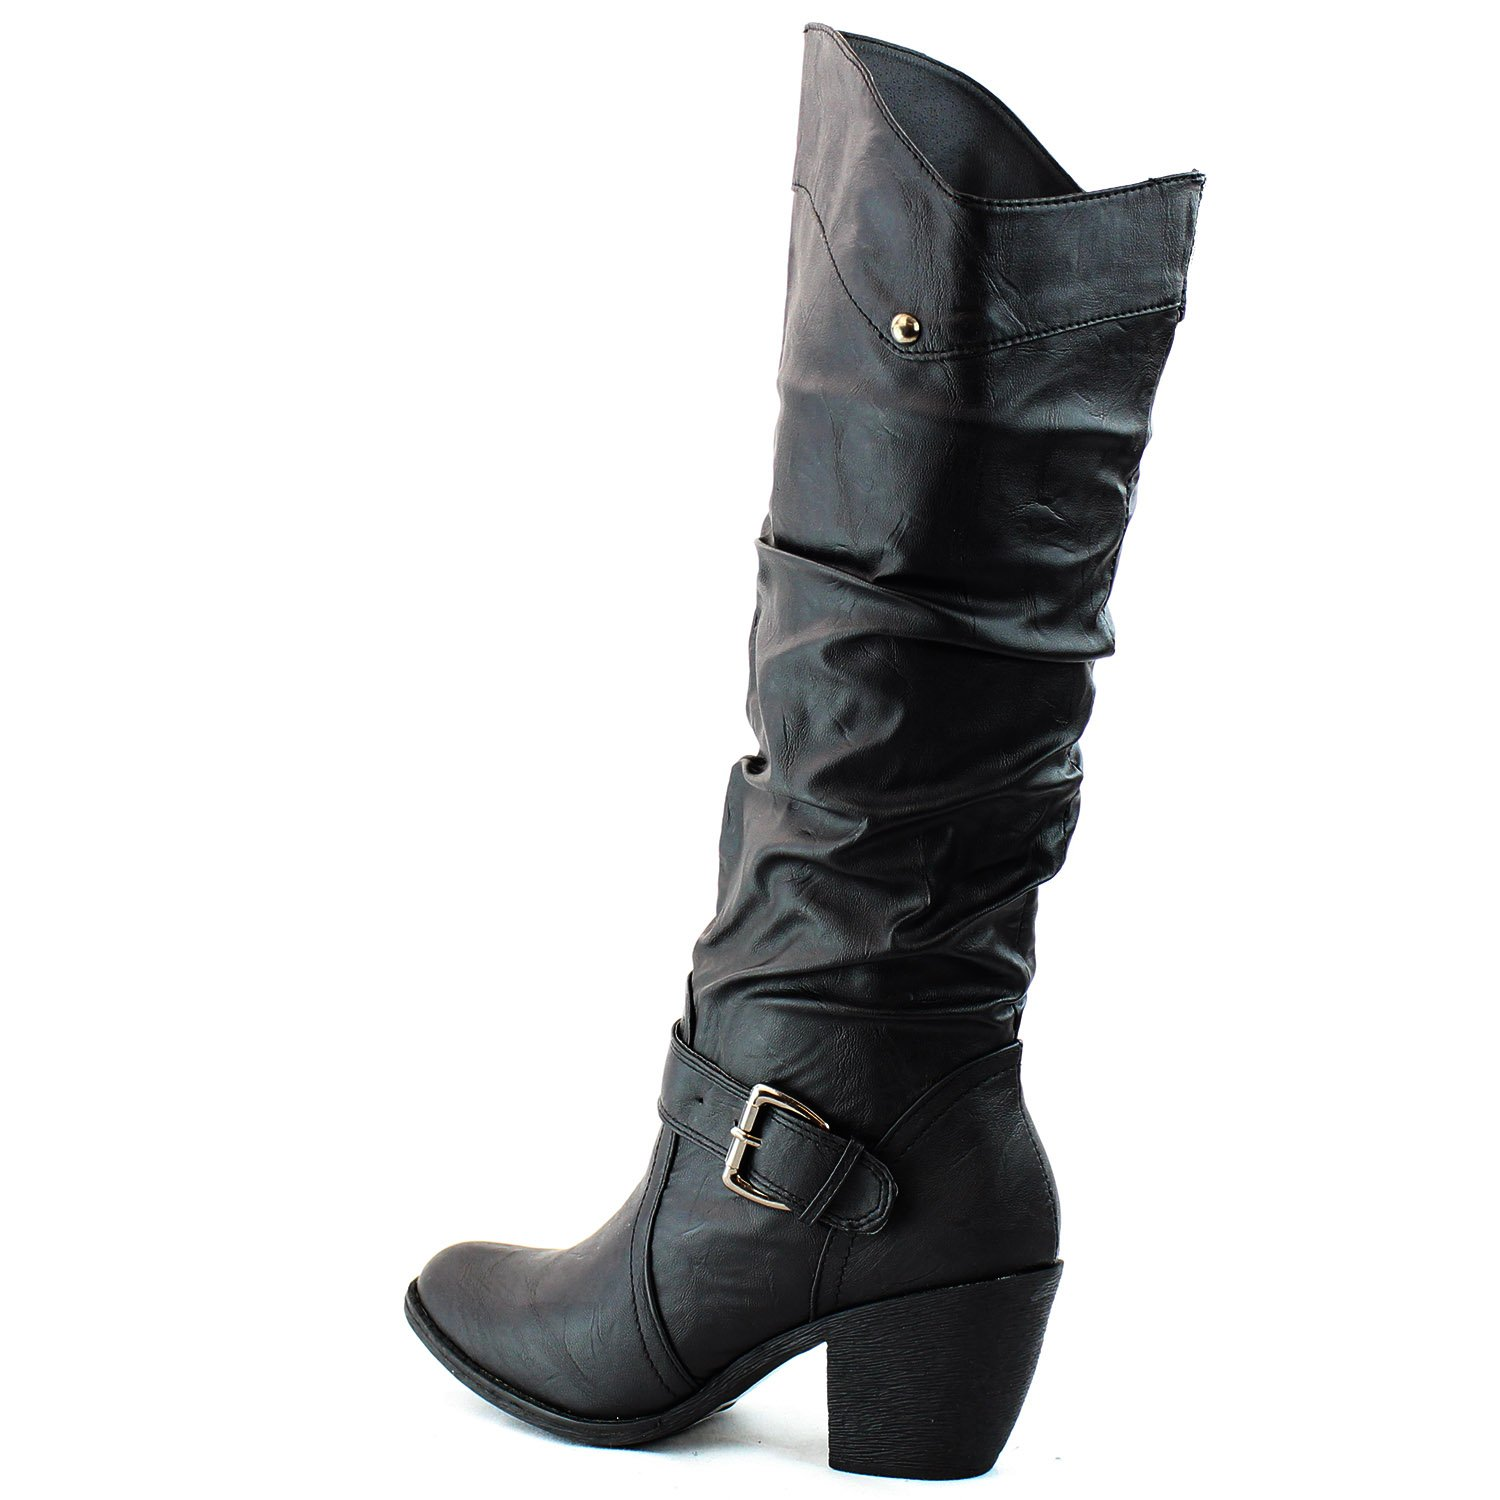 6ef301a3b33f Wild Diva Mid Claf Buckle Ankle Strap Cowboy Boots Round Toe Knee High  Combat Fashion Dress Casual Cowgirl Shoes